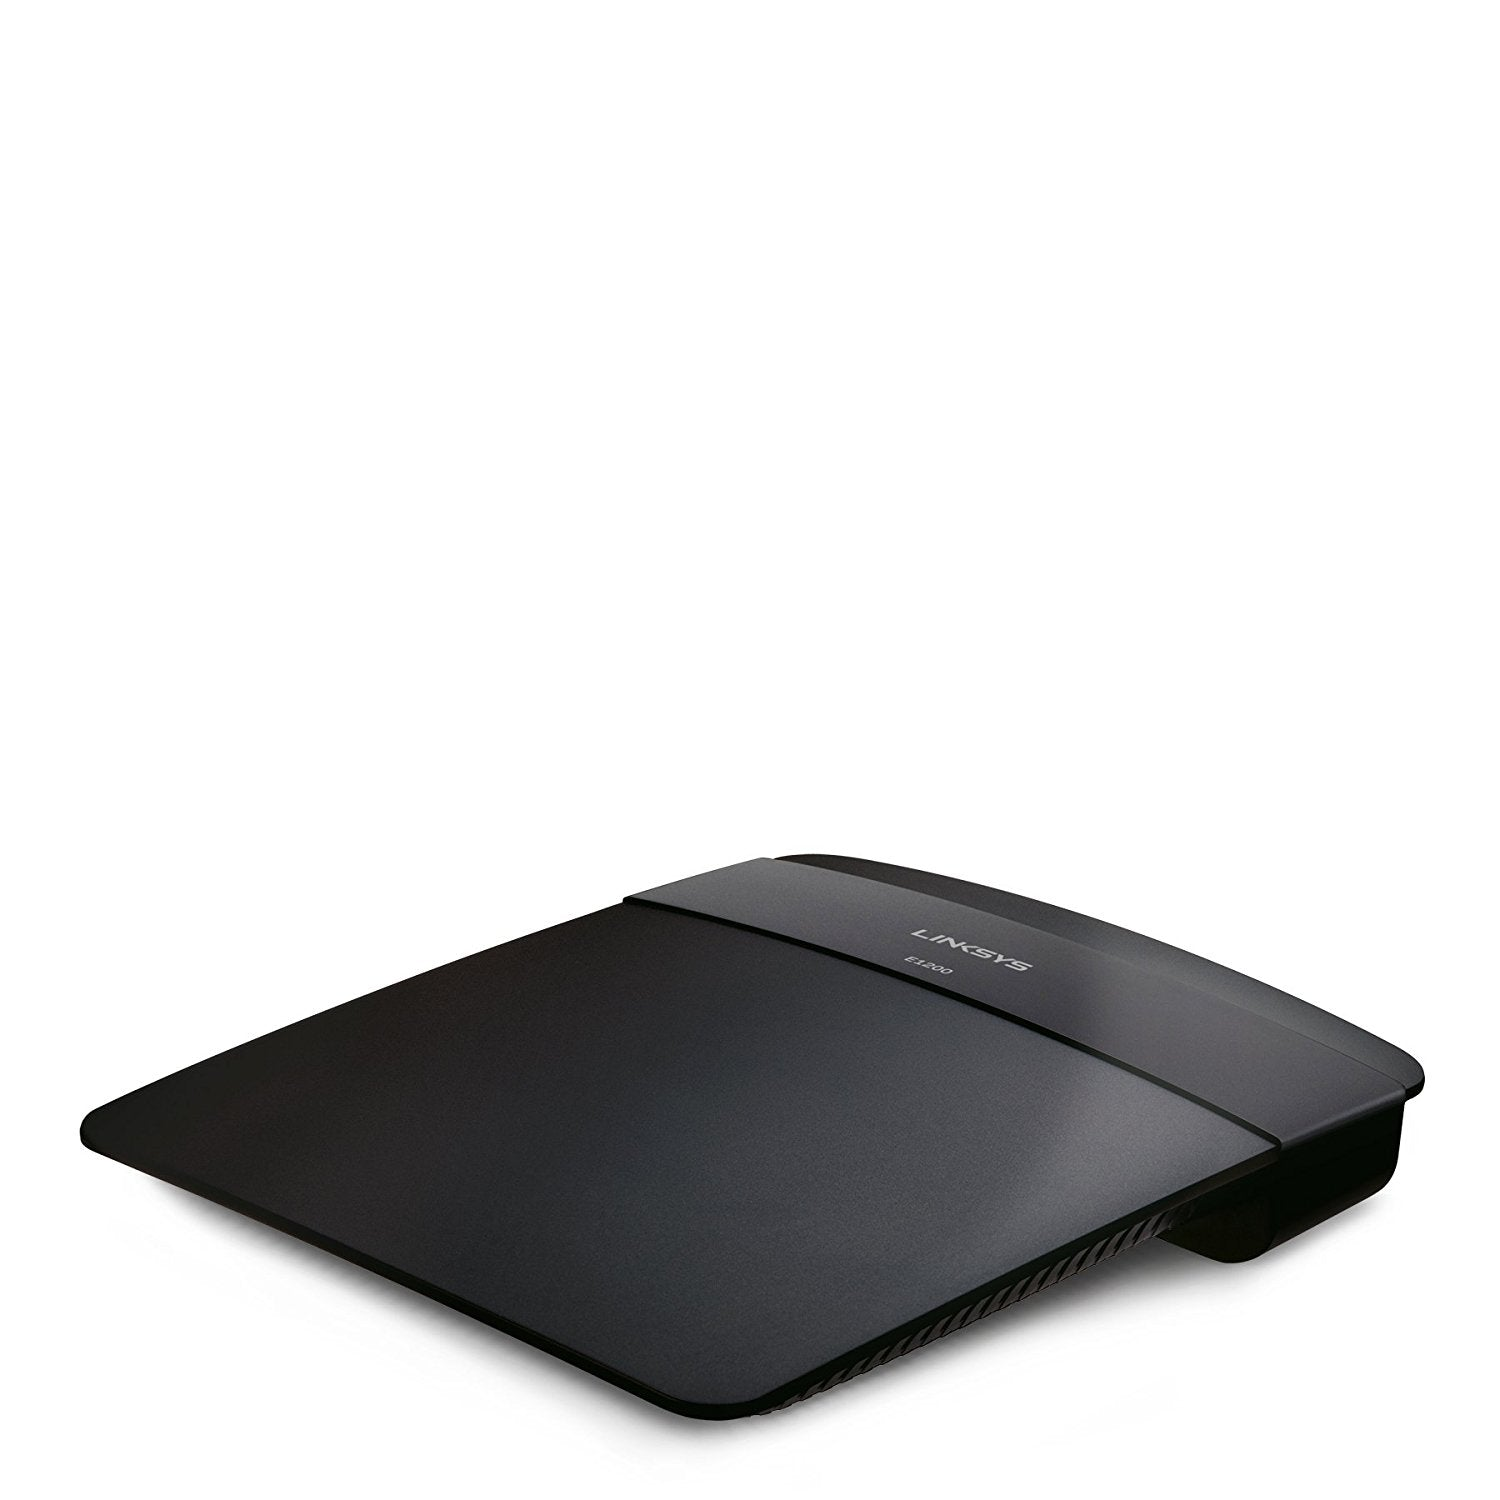 VPN Router discount code: Oct£20